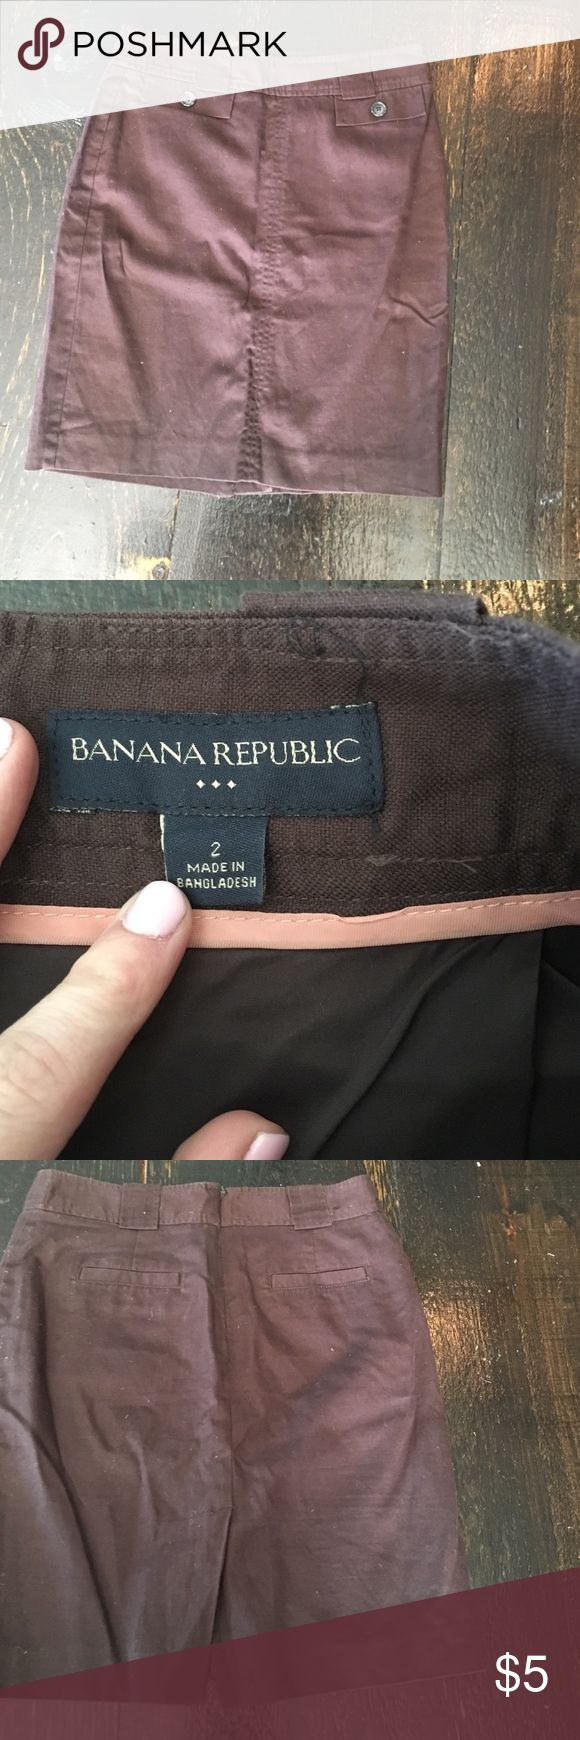 Banana Republic linen and cotton pencil skirt Banana Republic linen and cotton pencil skirt. Size 2. Worn once good condition. Banana Republic Skirts